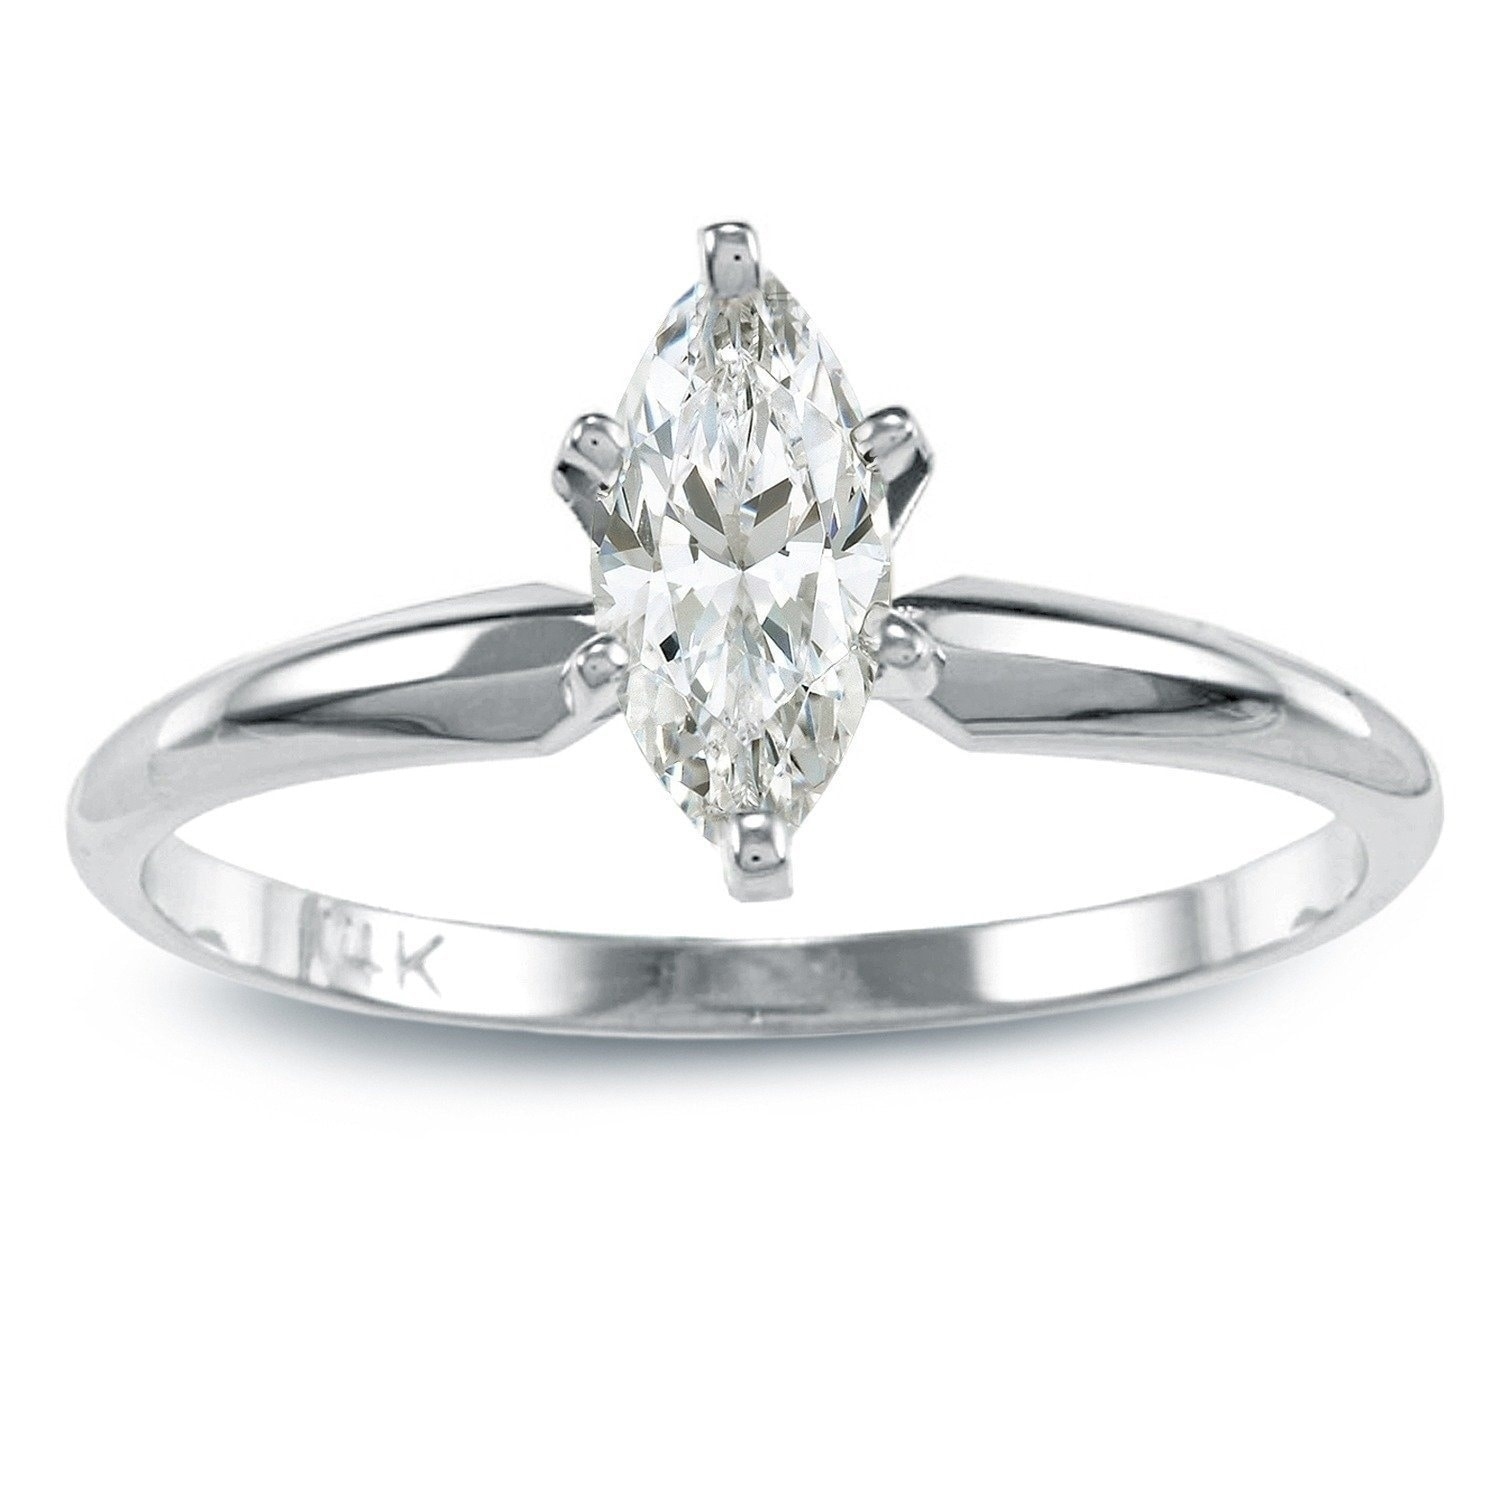 Auriya 14k Gold 1/2 carat TW Marquise Solitaire Diamond Engagement Ring